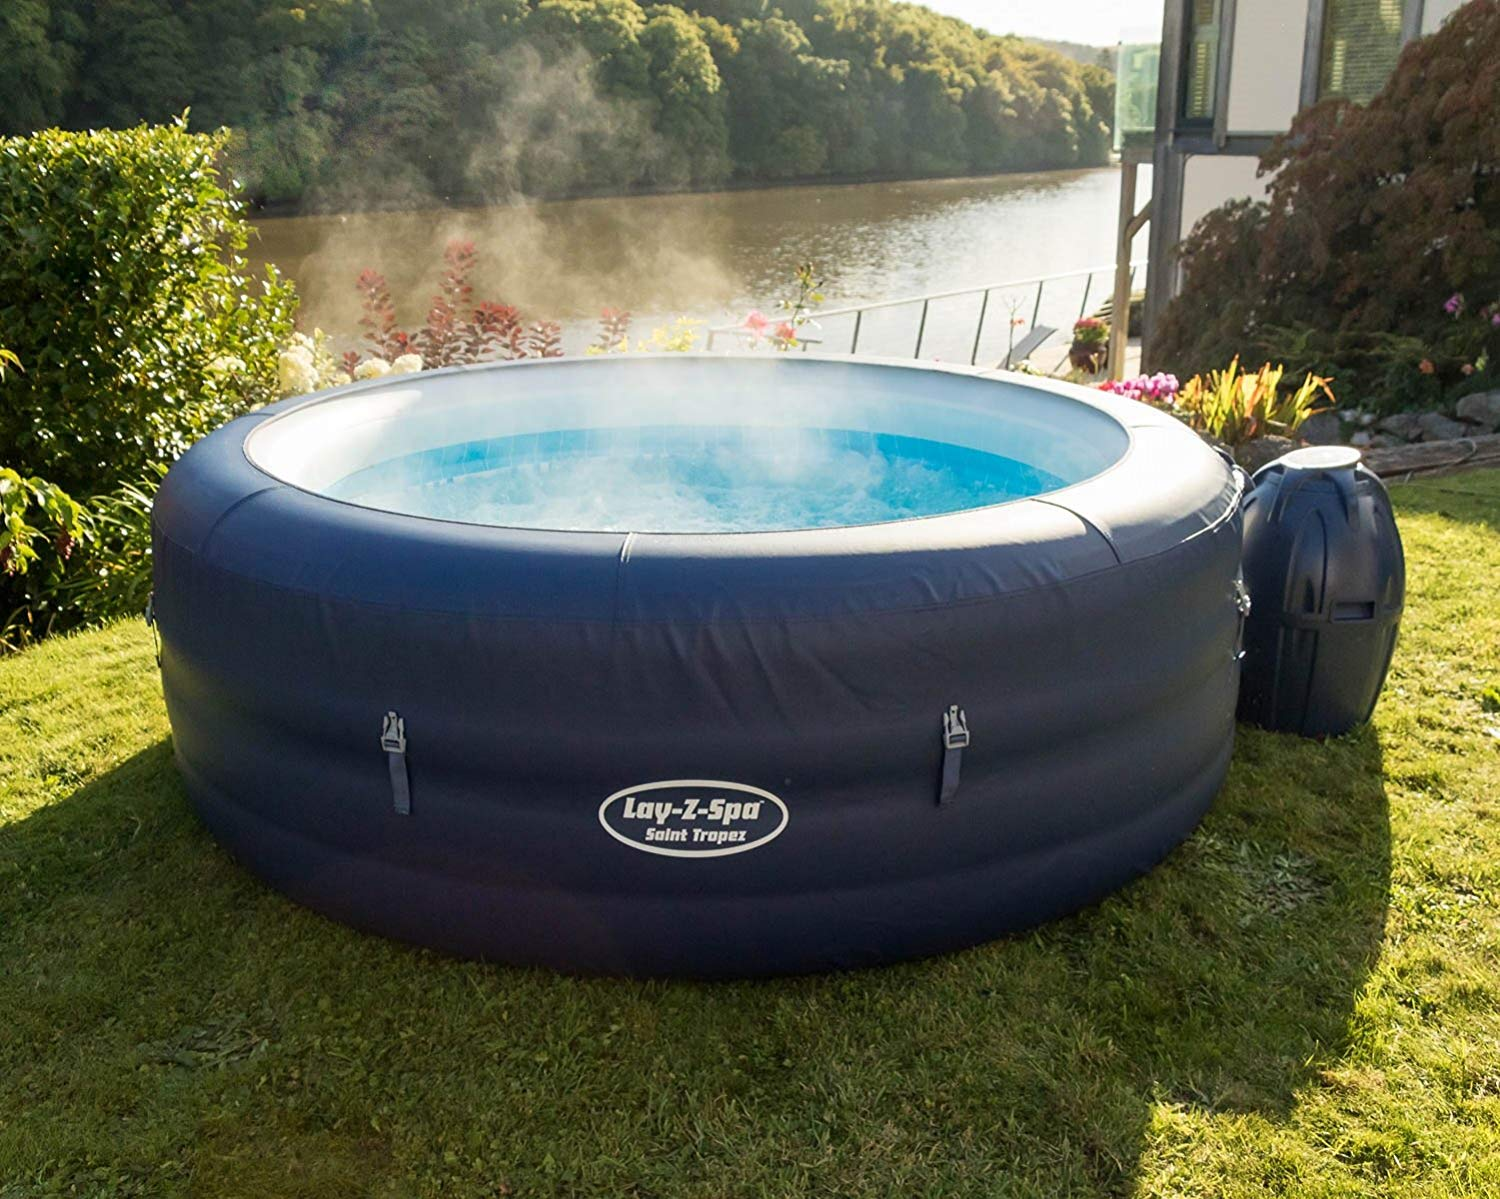 Hot Tub, Laz-y-spa